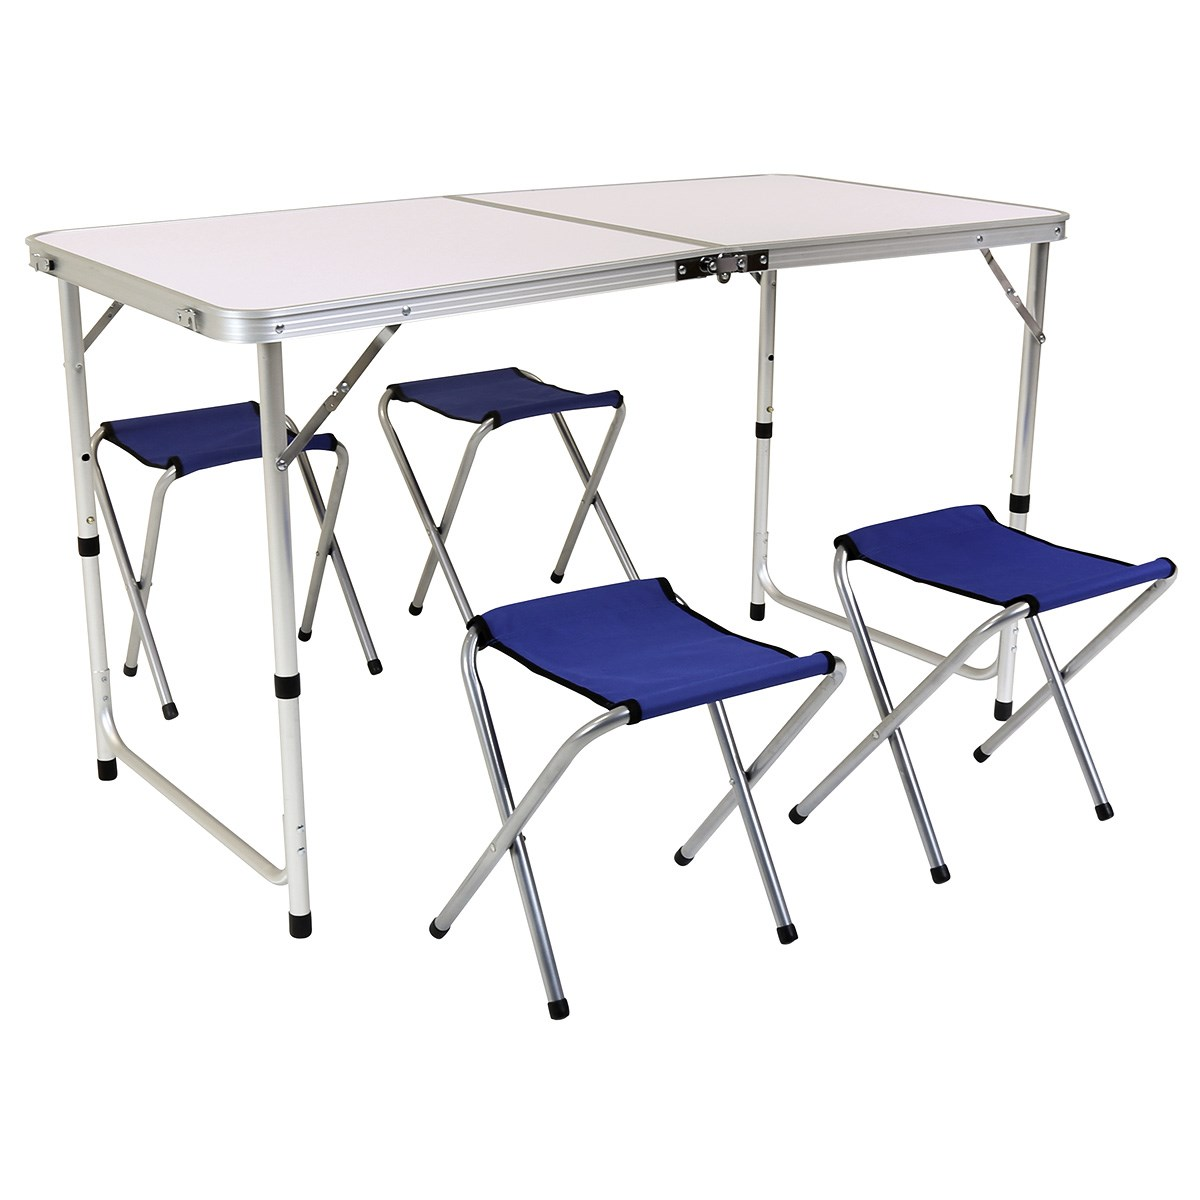 Folding Camping Table and Four Chairs